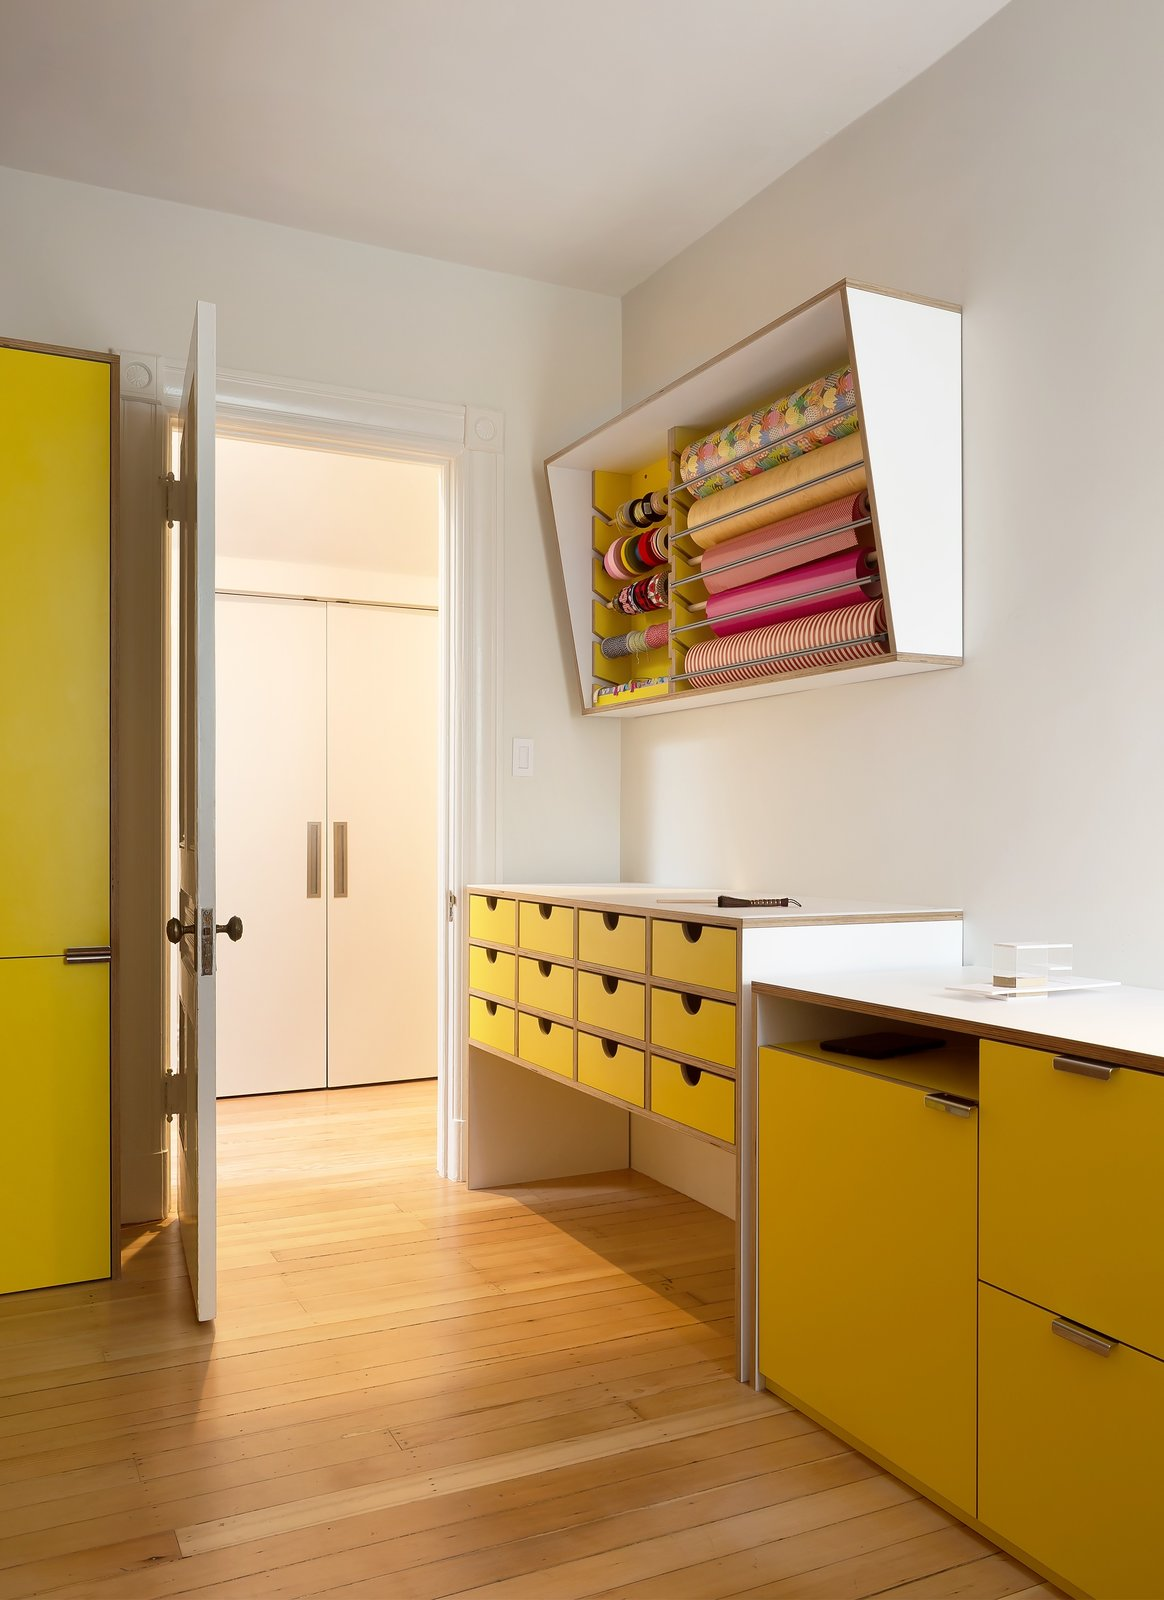 Photo 8 of 155 in Best Storage Cabinet Photos from The